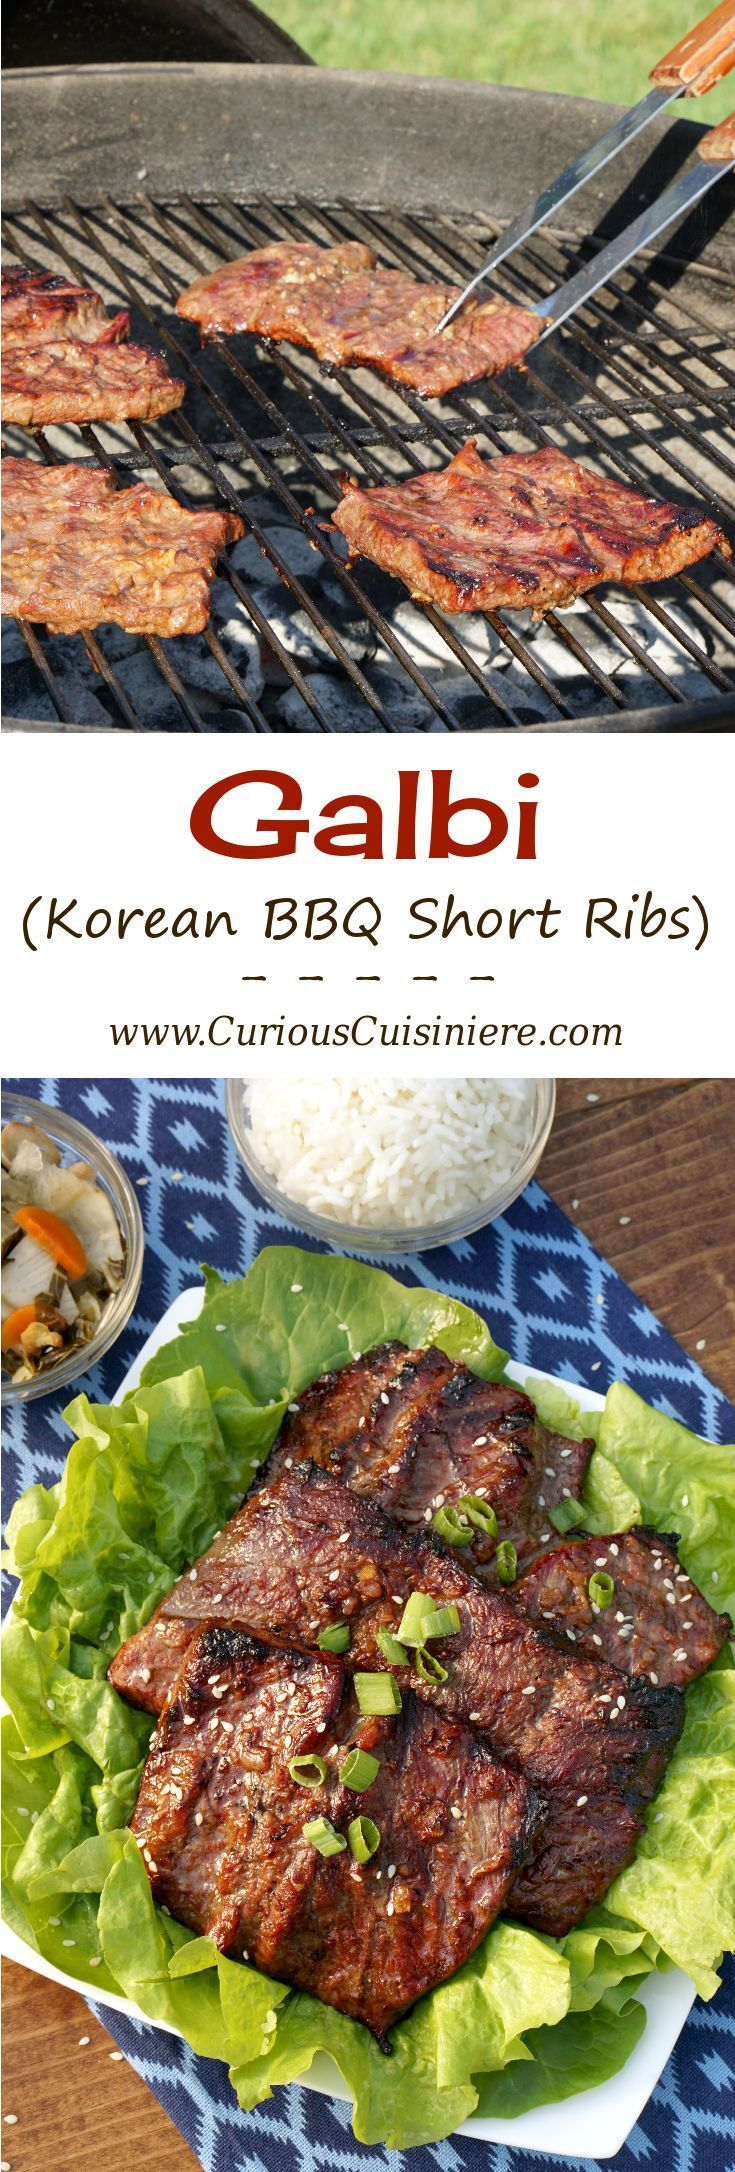 Grilled Short Ribs on Pinterest | Short Ribs, Ribs and Beef Short Ribs ...